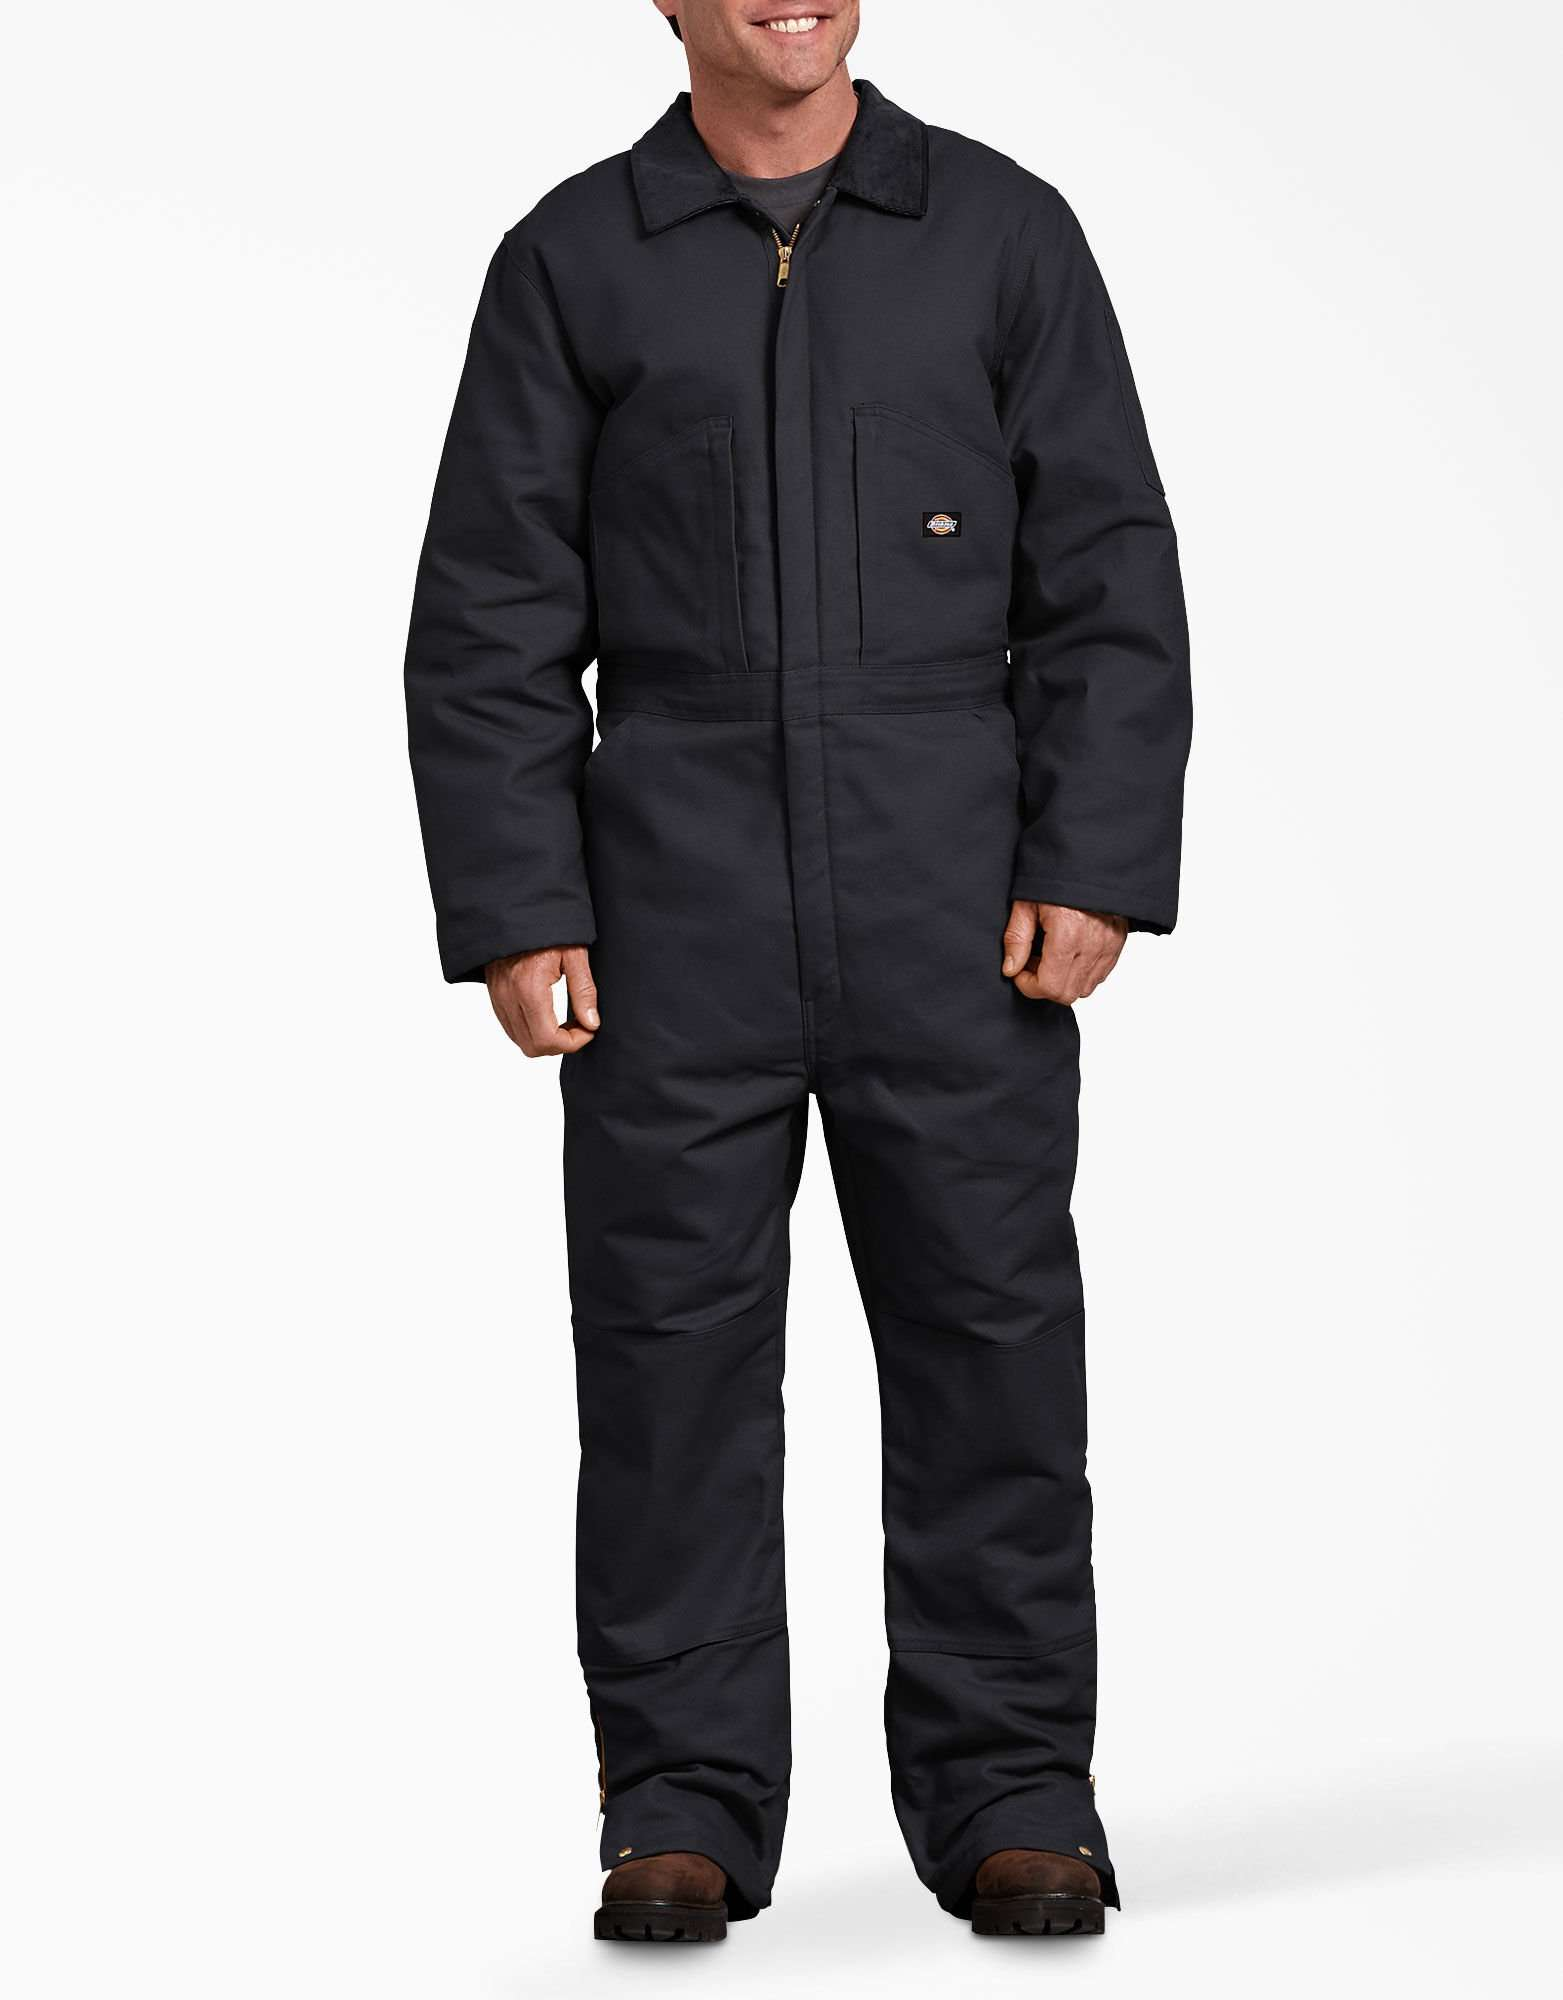 Unisex Duck Insulated Coverall